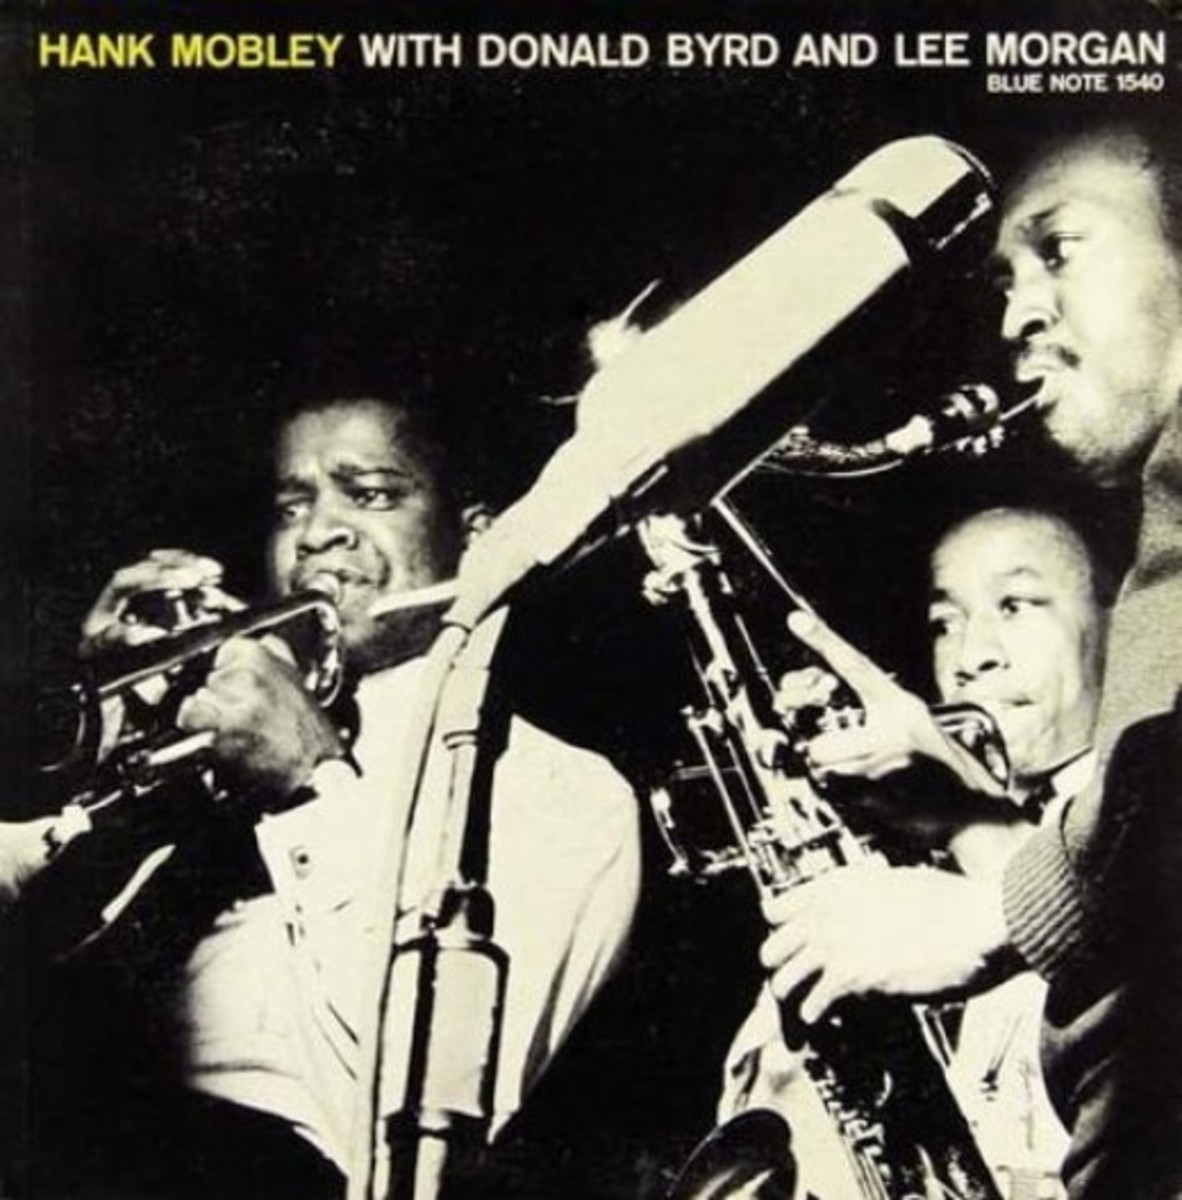 "Hank Mobley ""With Donald Byrd and Lee Morgan"" Blue Note Records BLP 1540 12"" Vinyl Record (1956) Album Cover Design by Reid Miles Photo by Francis Wolff"